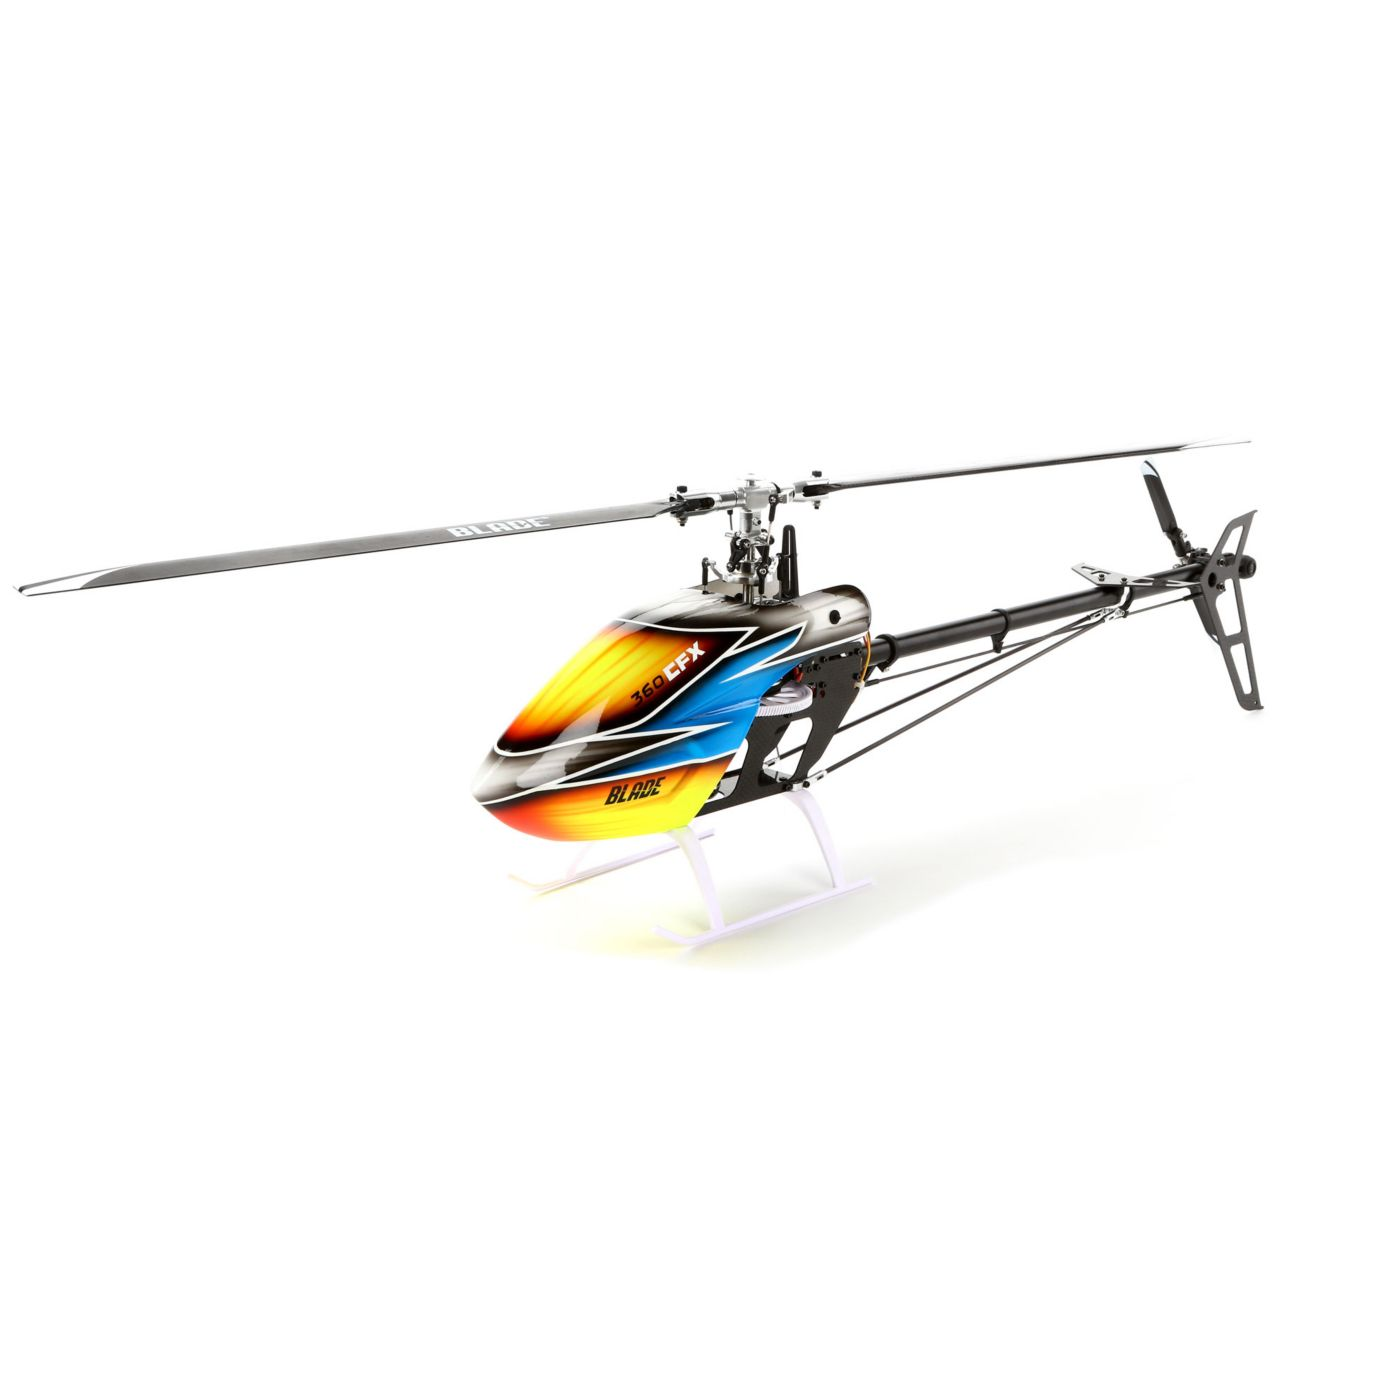 Brilliant Blade 450 3D Rc Helicopter Parts Diagram Blade Free Engine Image For Wiring Digital Resources Hutpapmognl